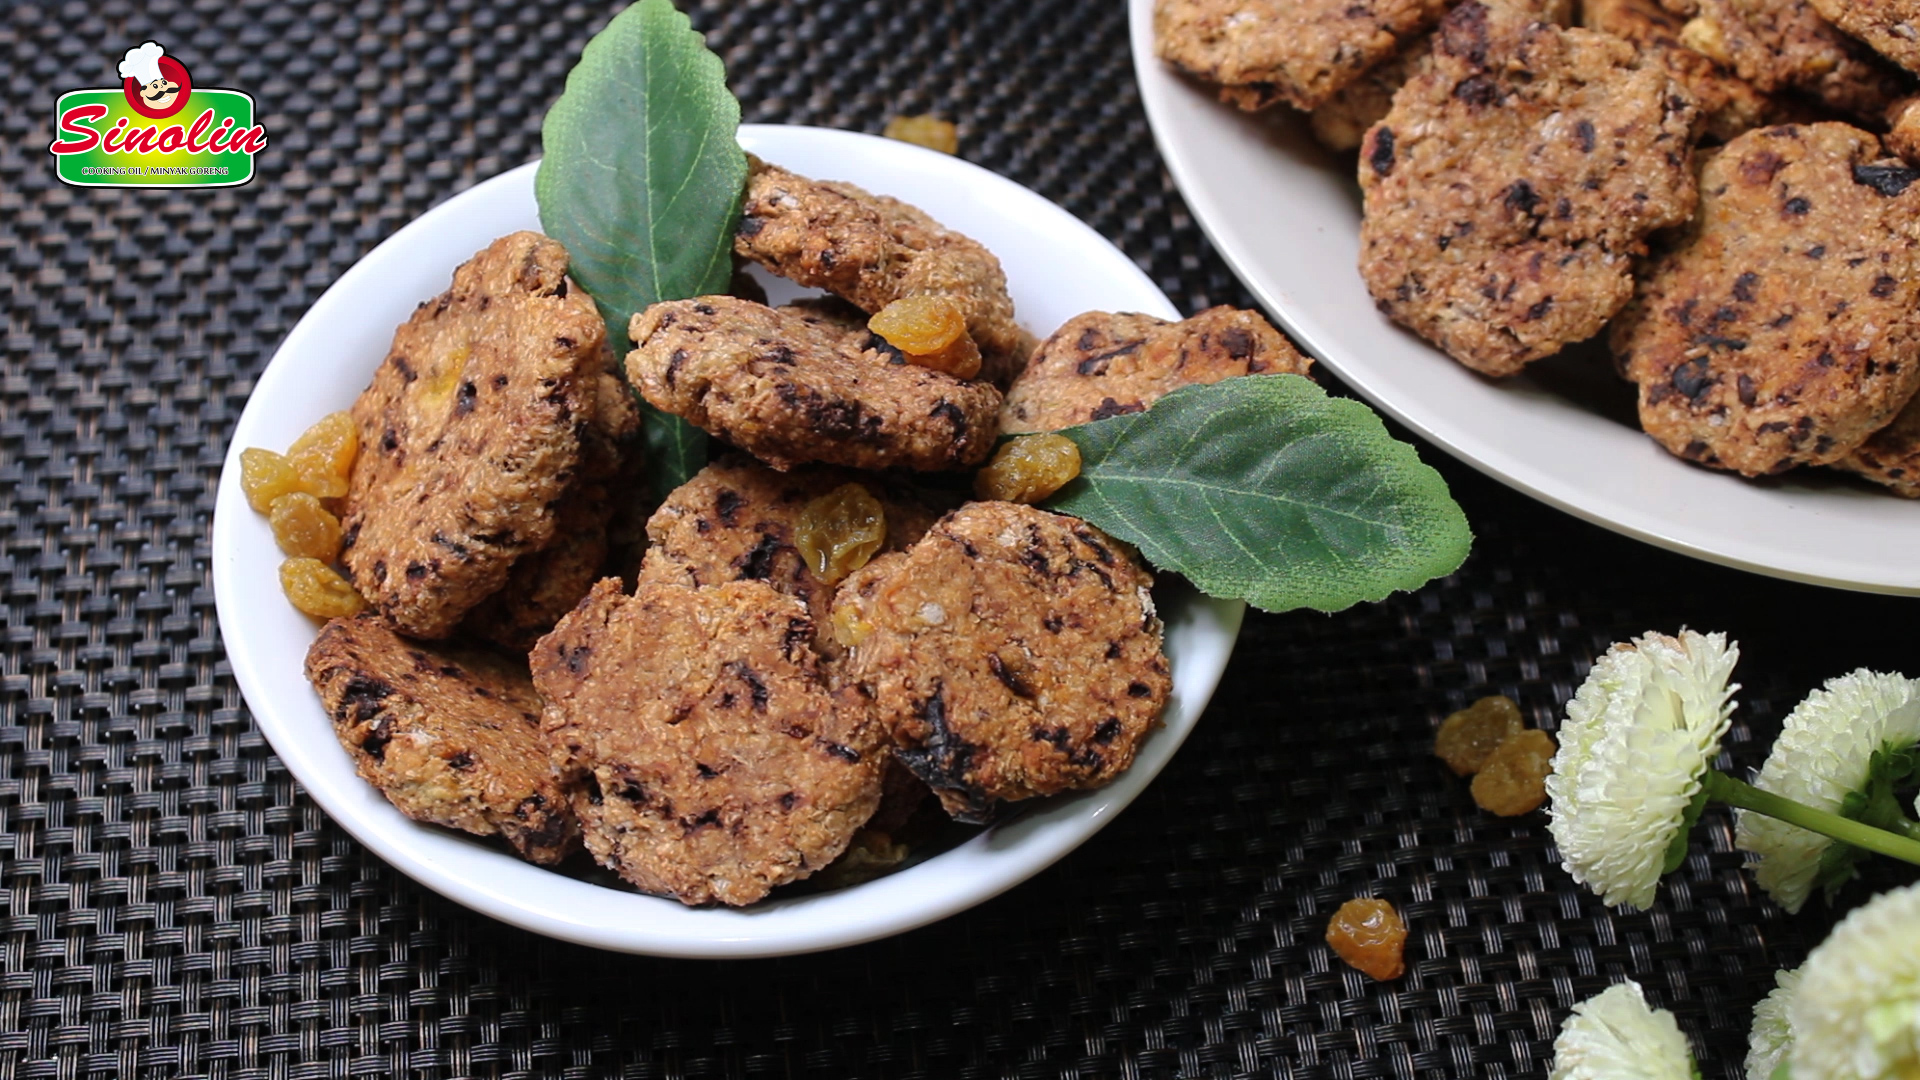 One-bowl Peanut Butter & Chocolate Oatmeal Cookies By Dapur Sinolin